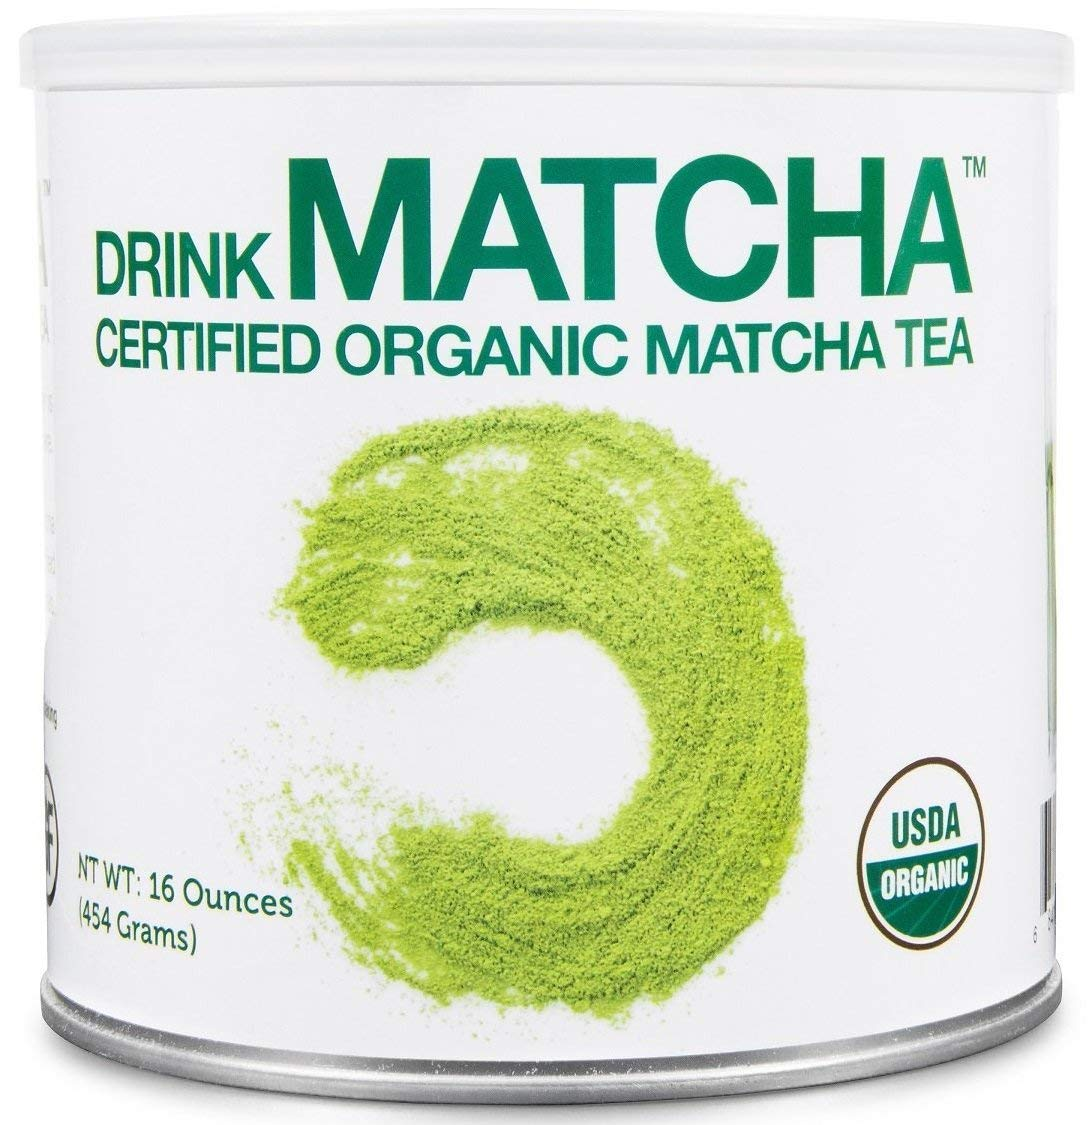 Drink Matcha -16 oz Matcha Green Tea Powder - USDA Organic - 100% Pure Organic M